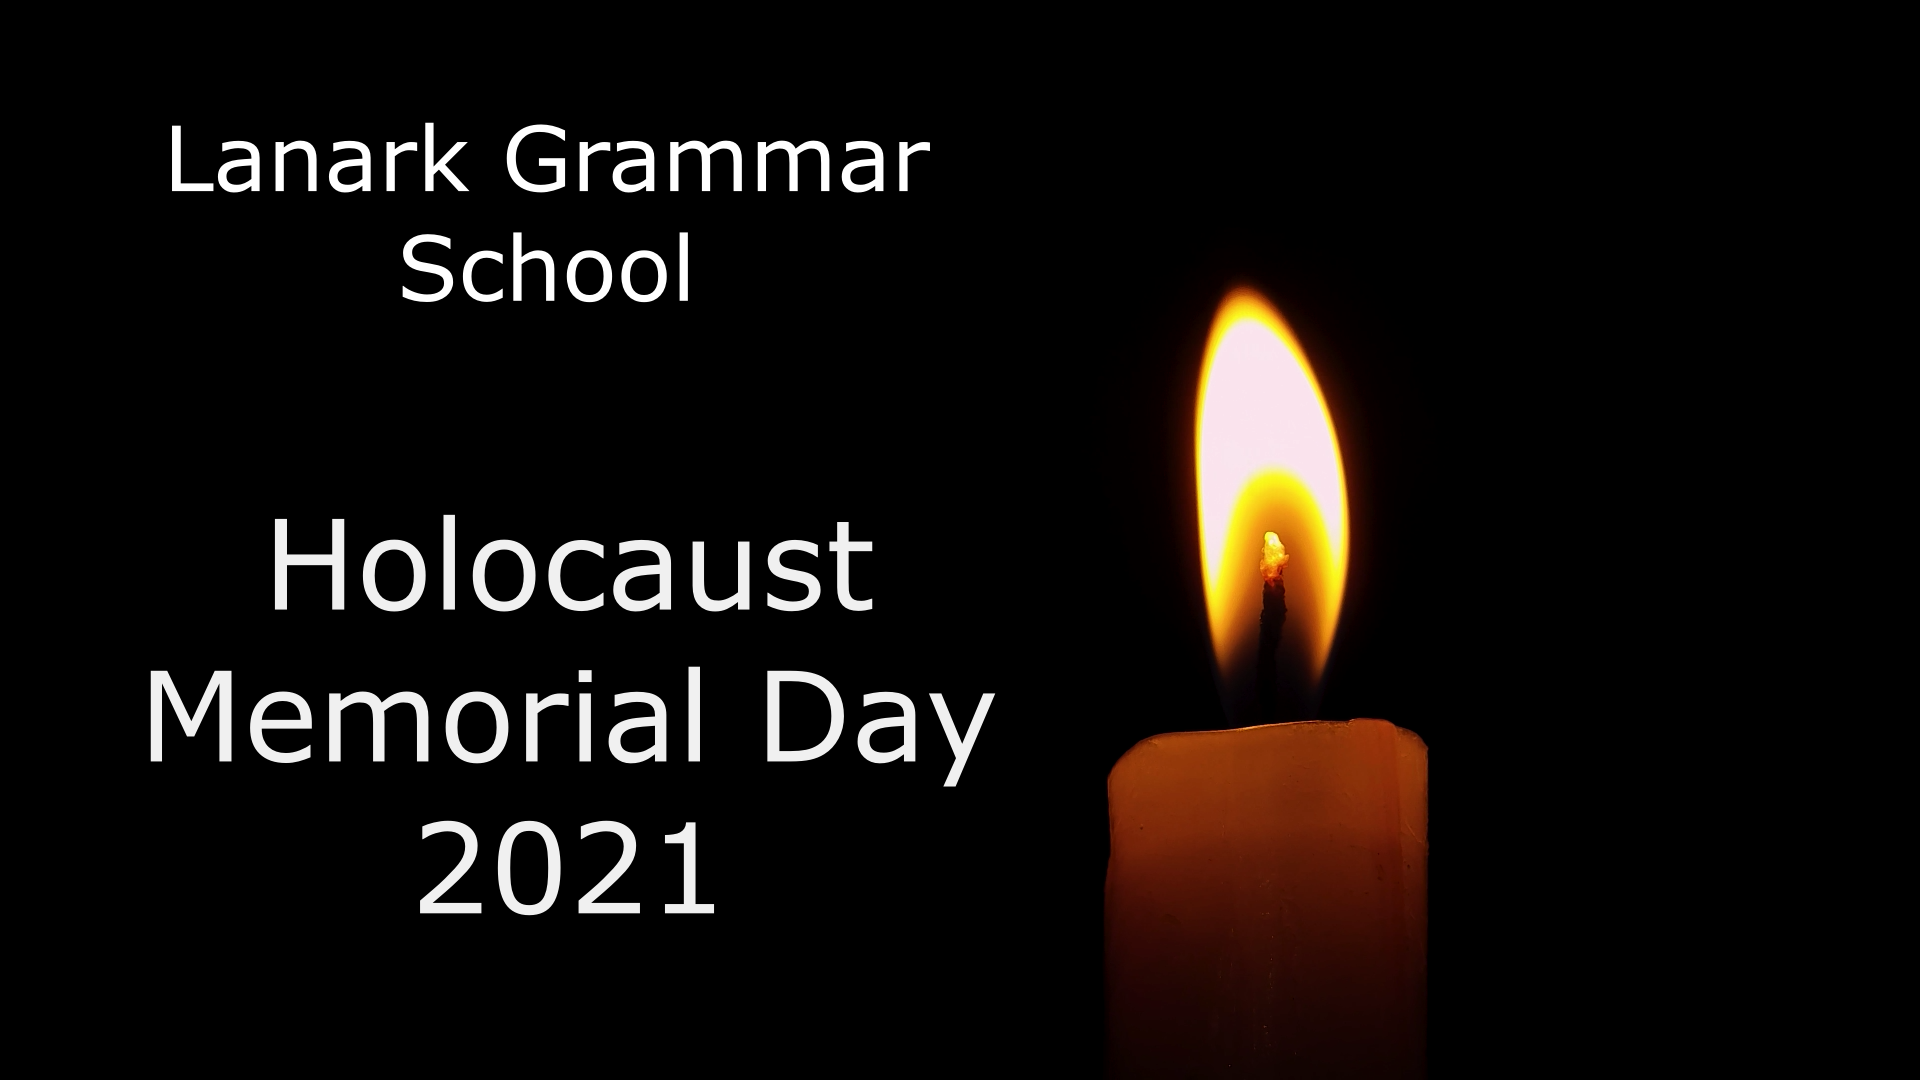 Lanark Grammar School Act of Remembrance and Hope